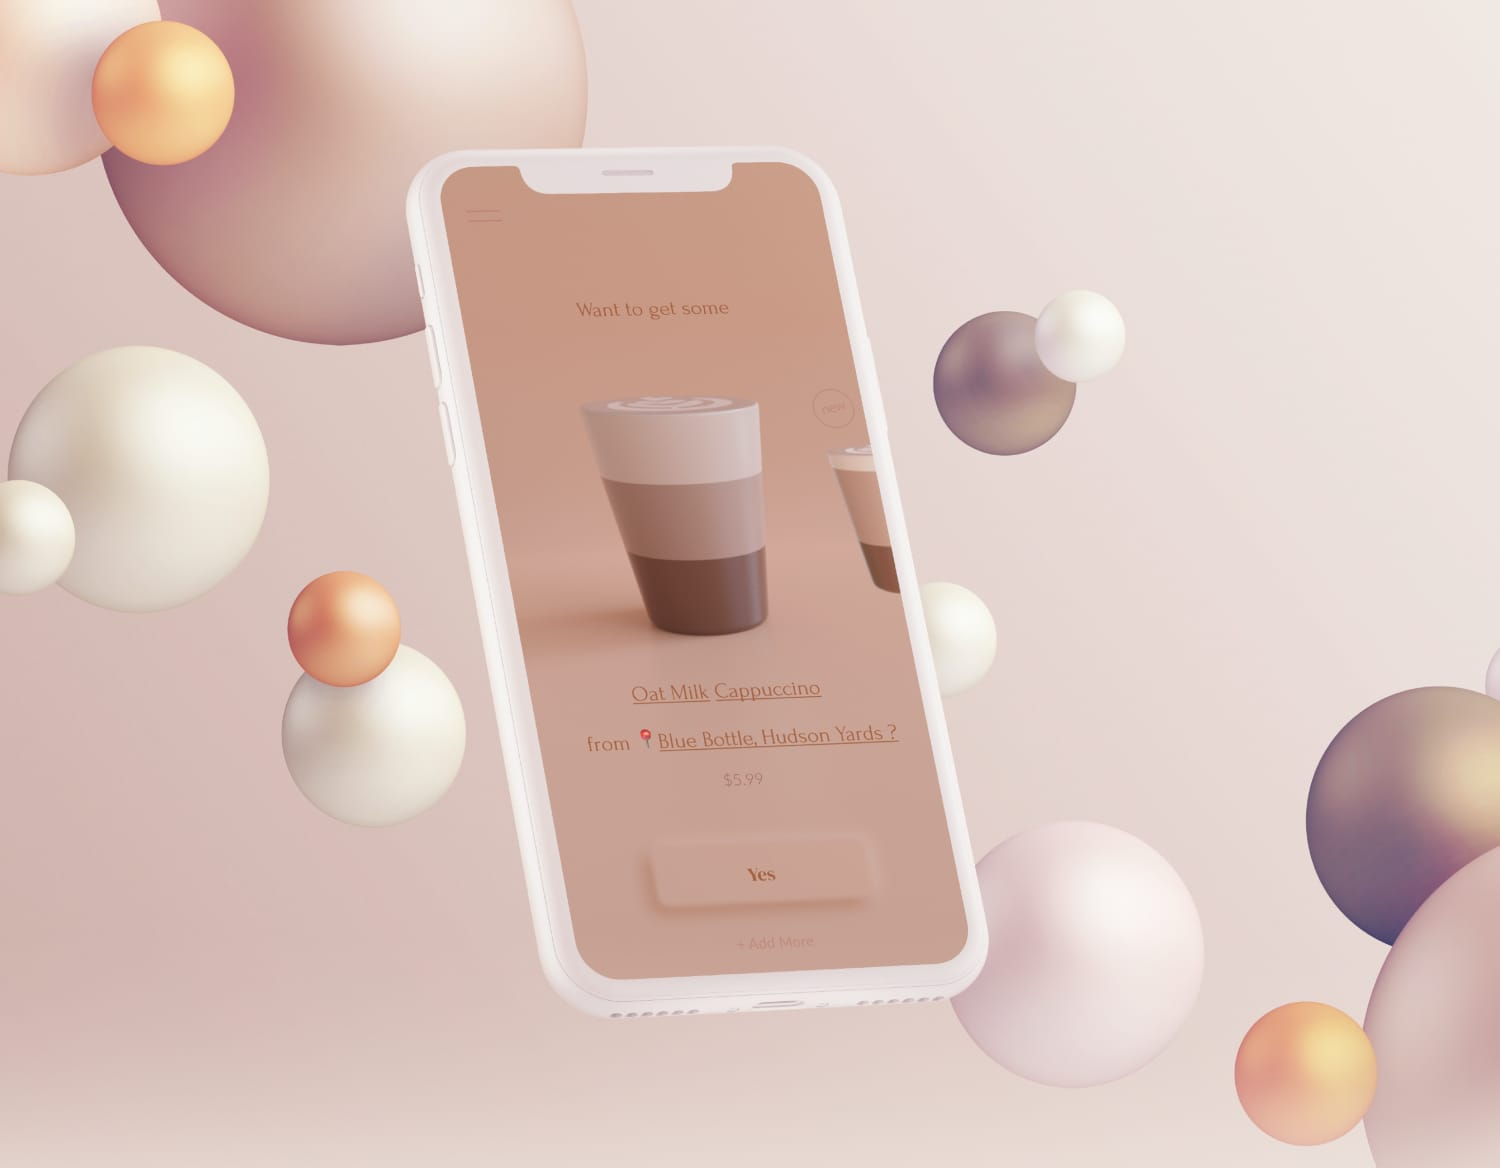 Coffee Cup. Case study